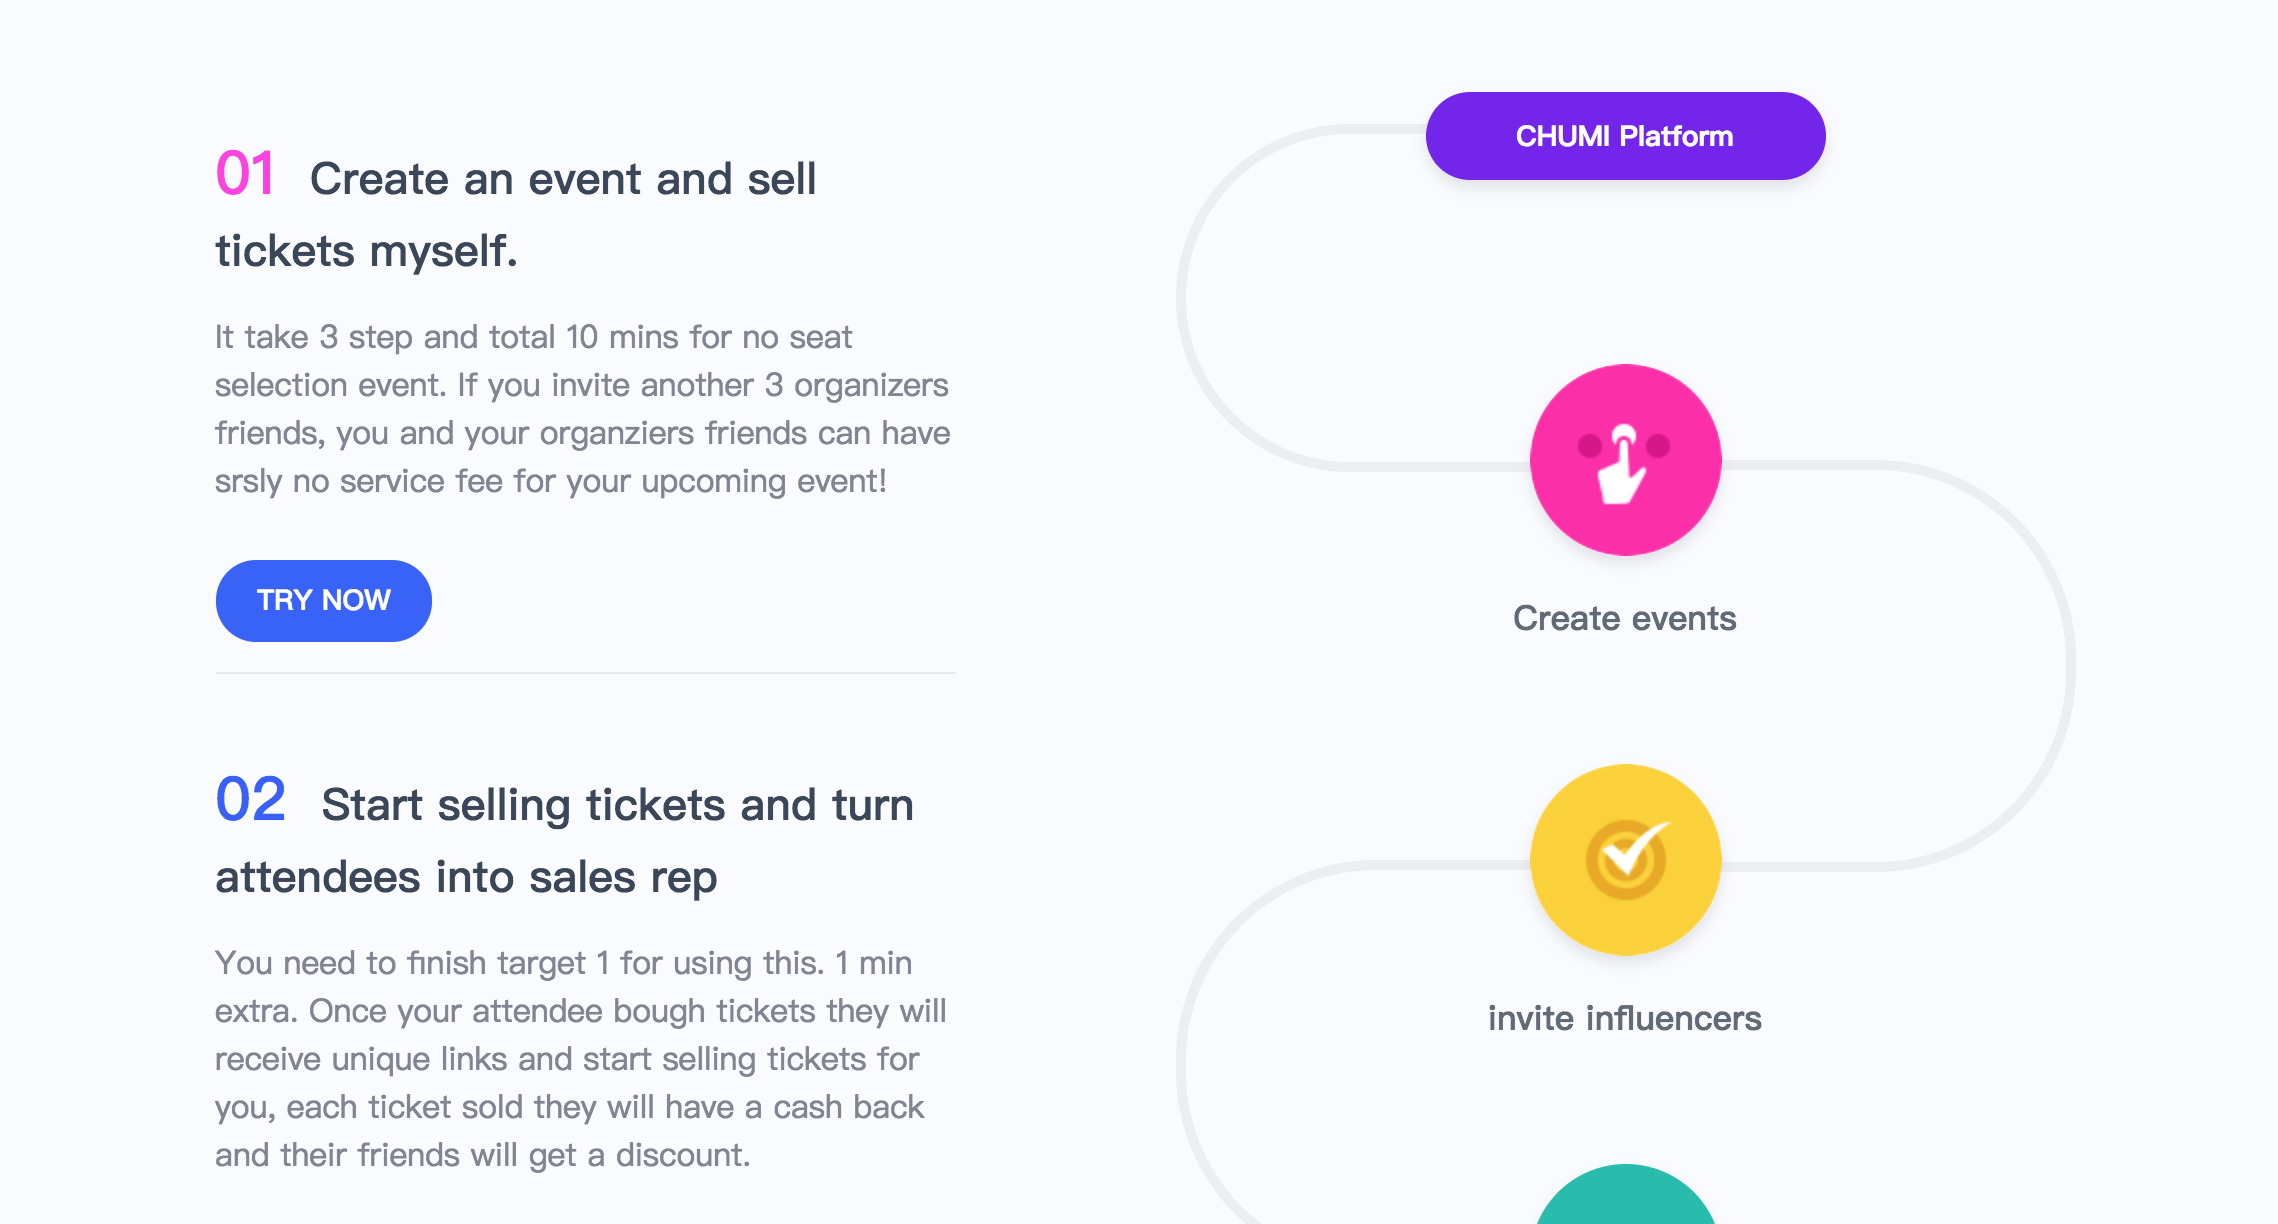 Selling tickets online: Eventbrite, Stubhub, Chumi and